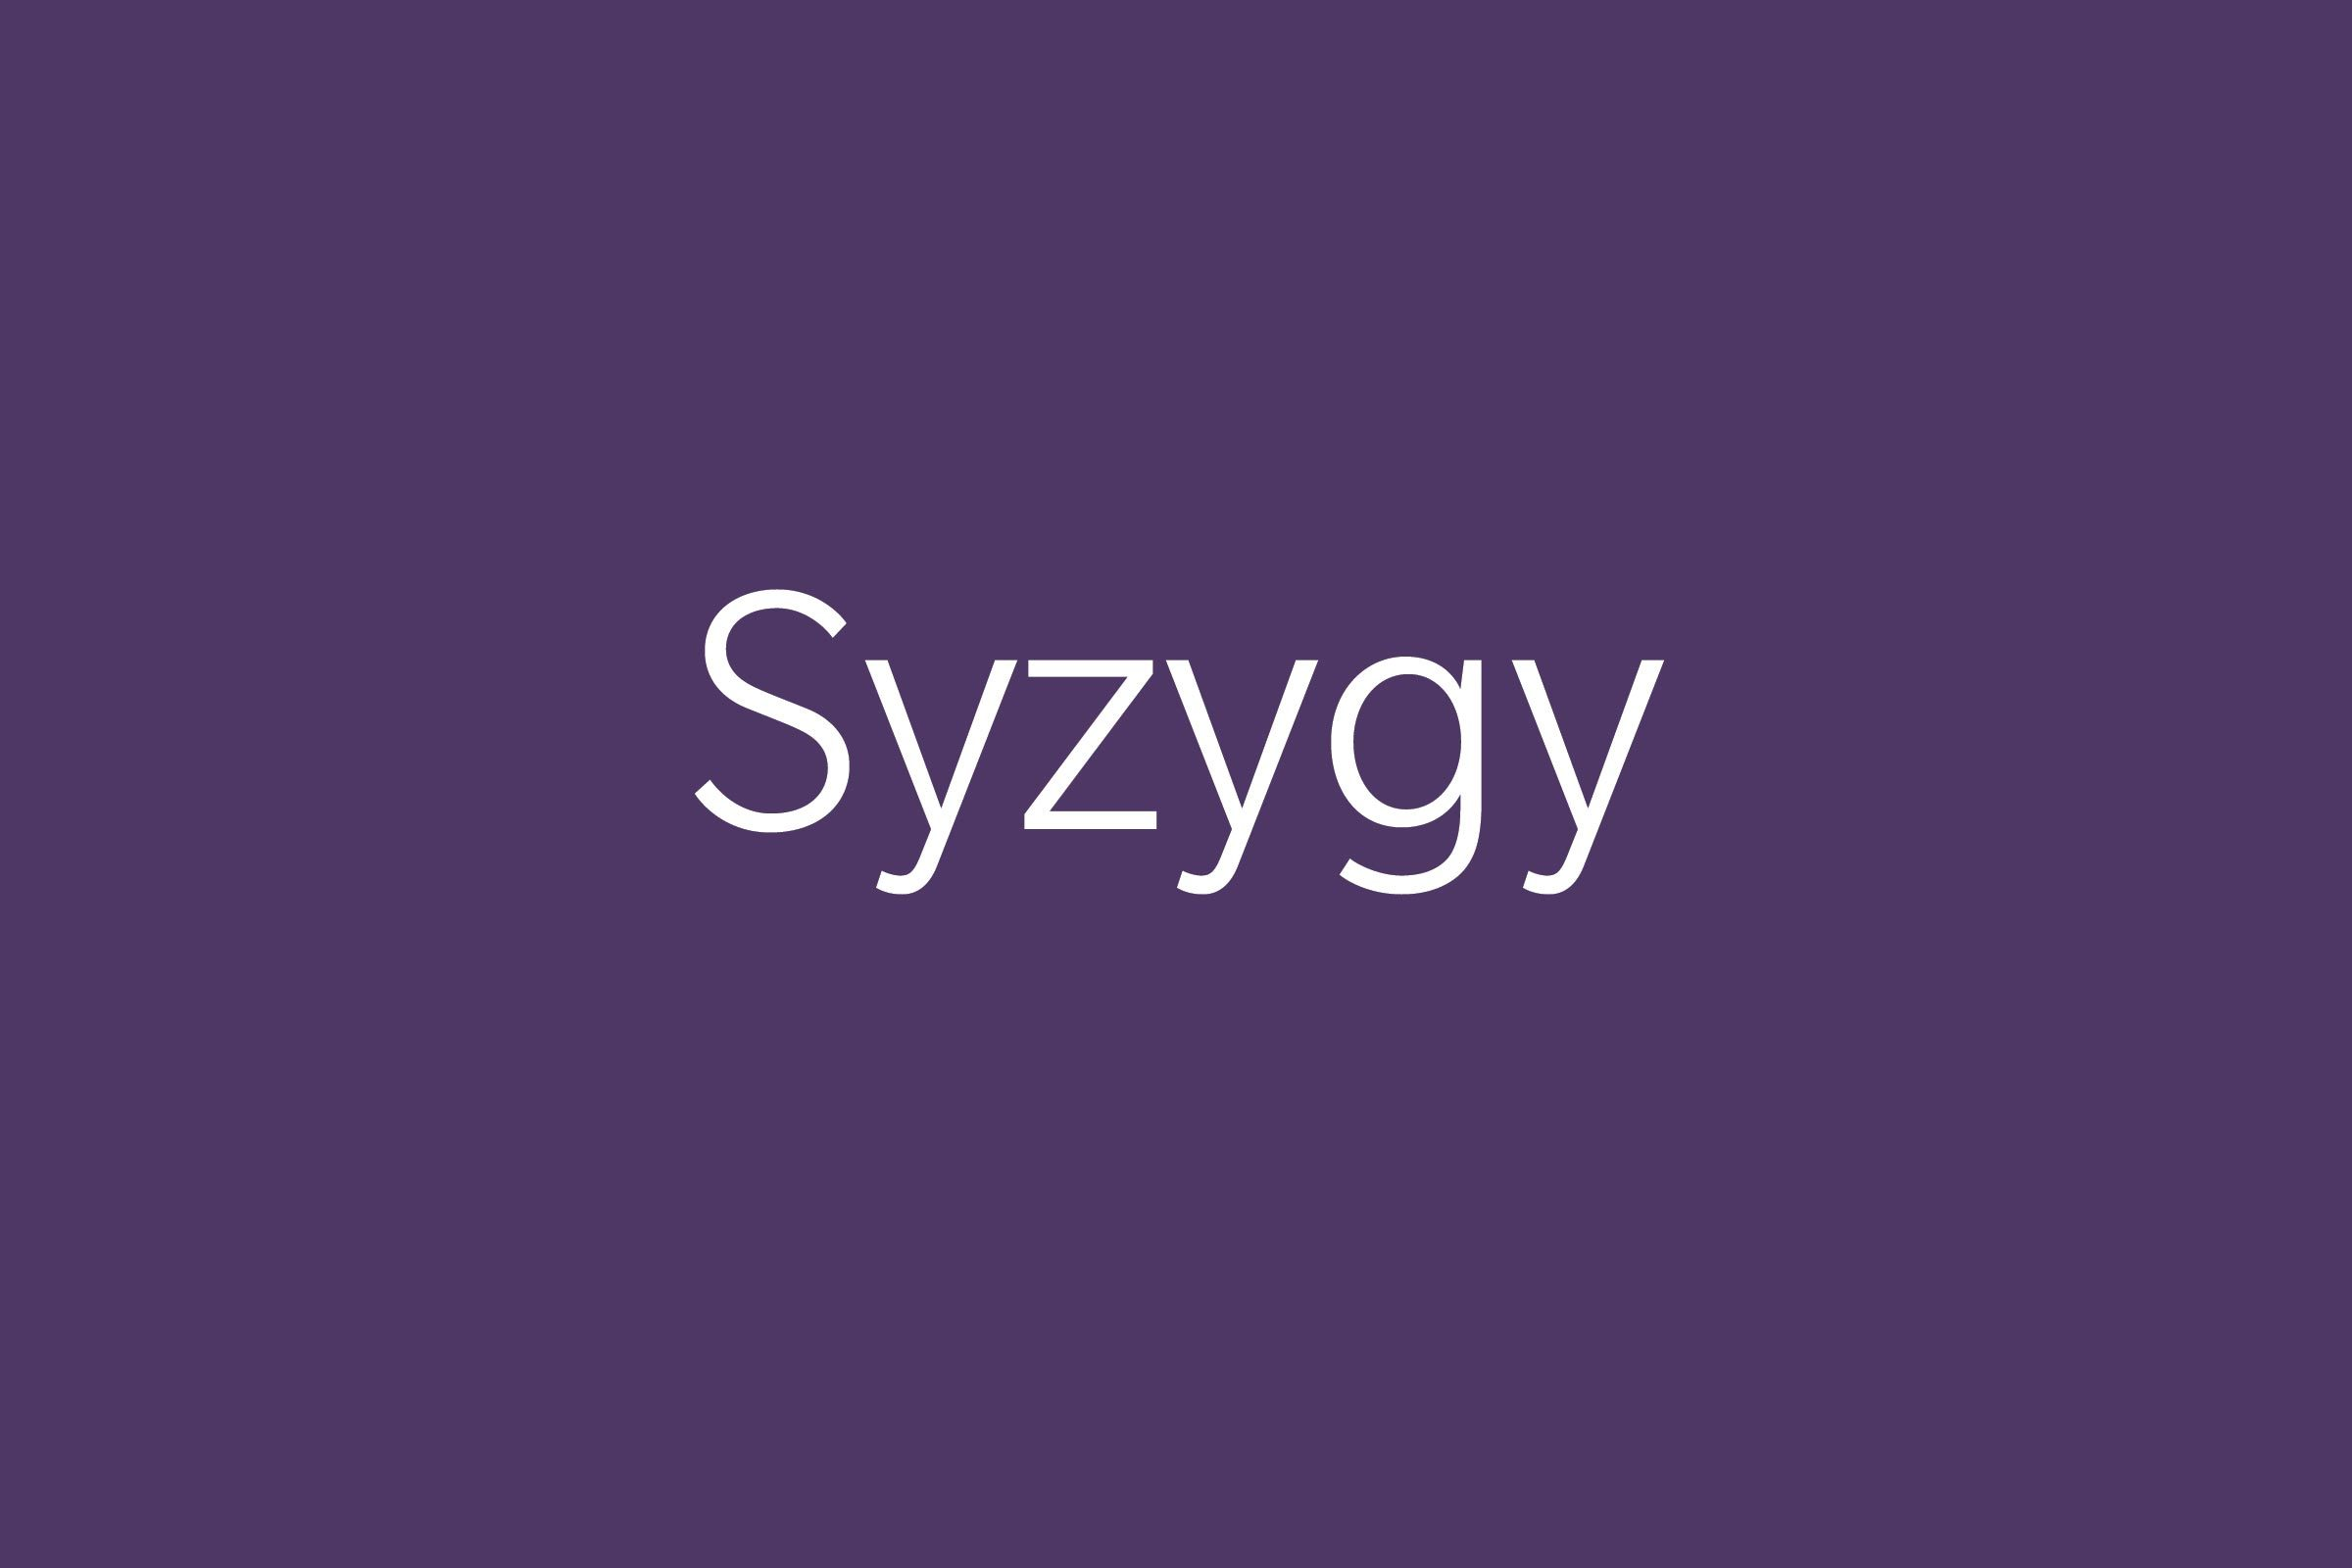 syzgy funny word funny words to say